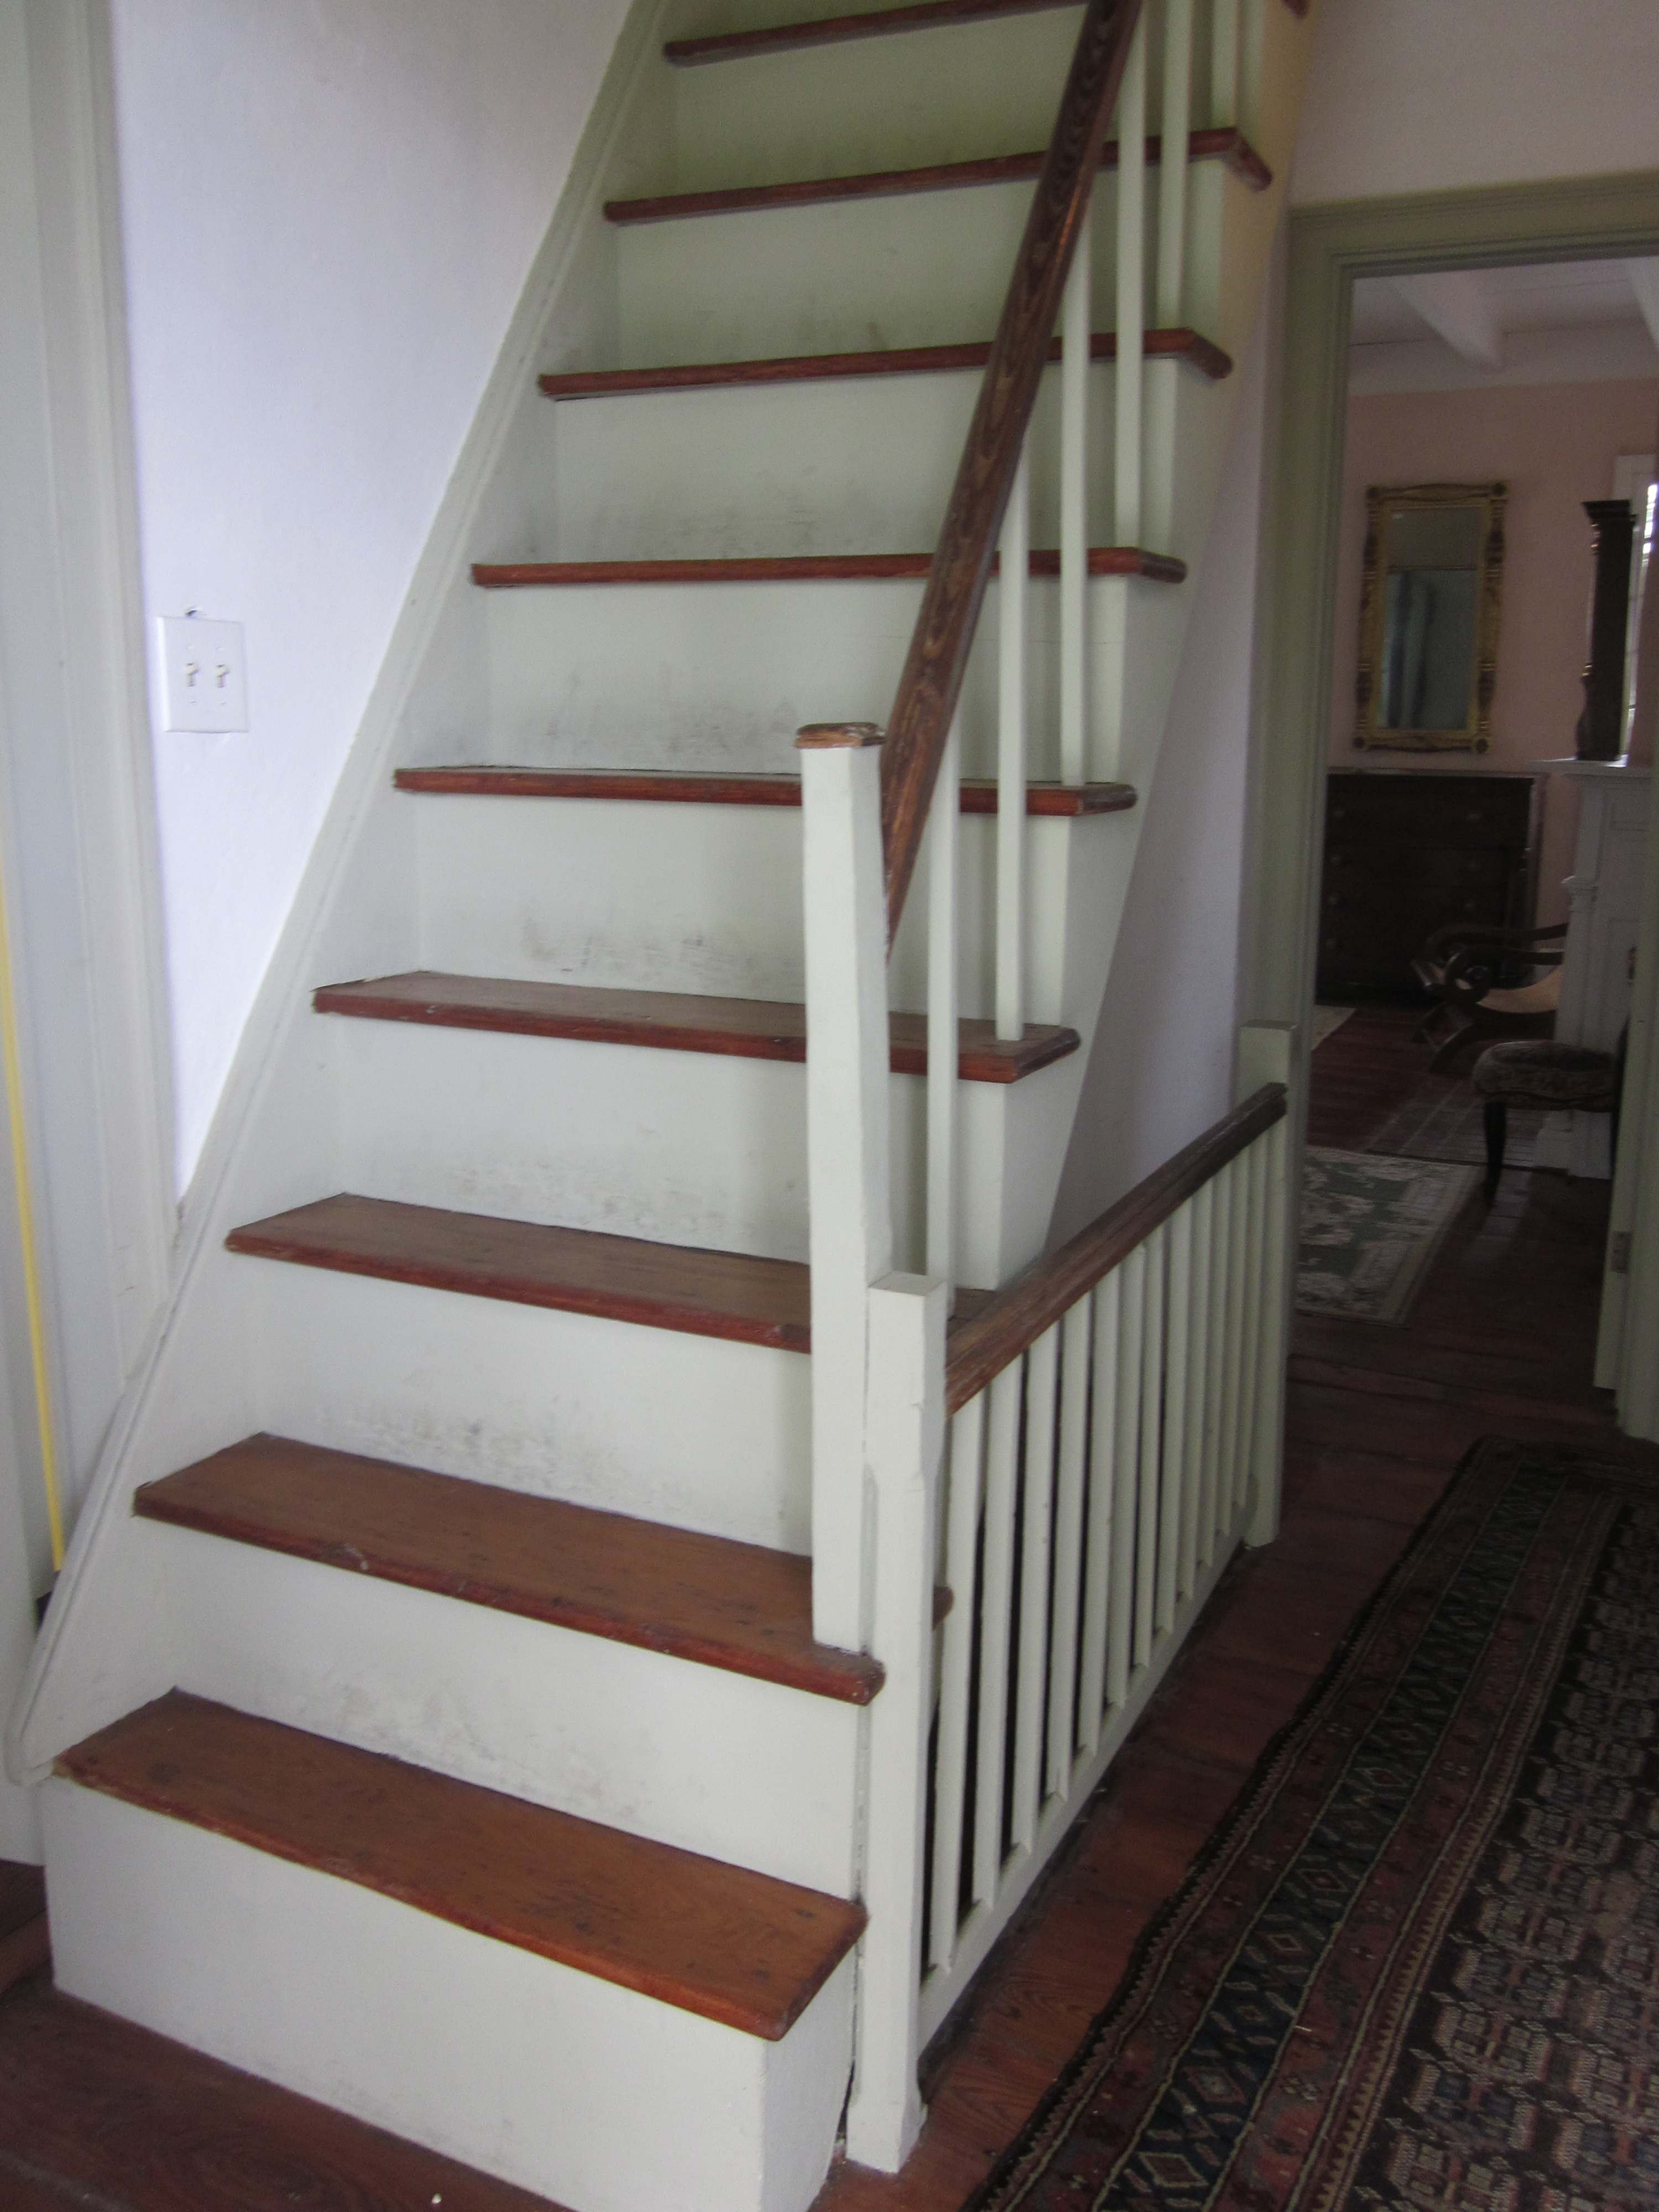 House Of Stairs File Mary Plantation House Upstairs Interior Stairs To